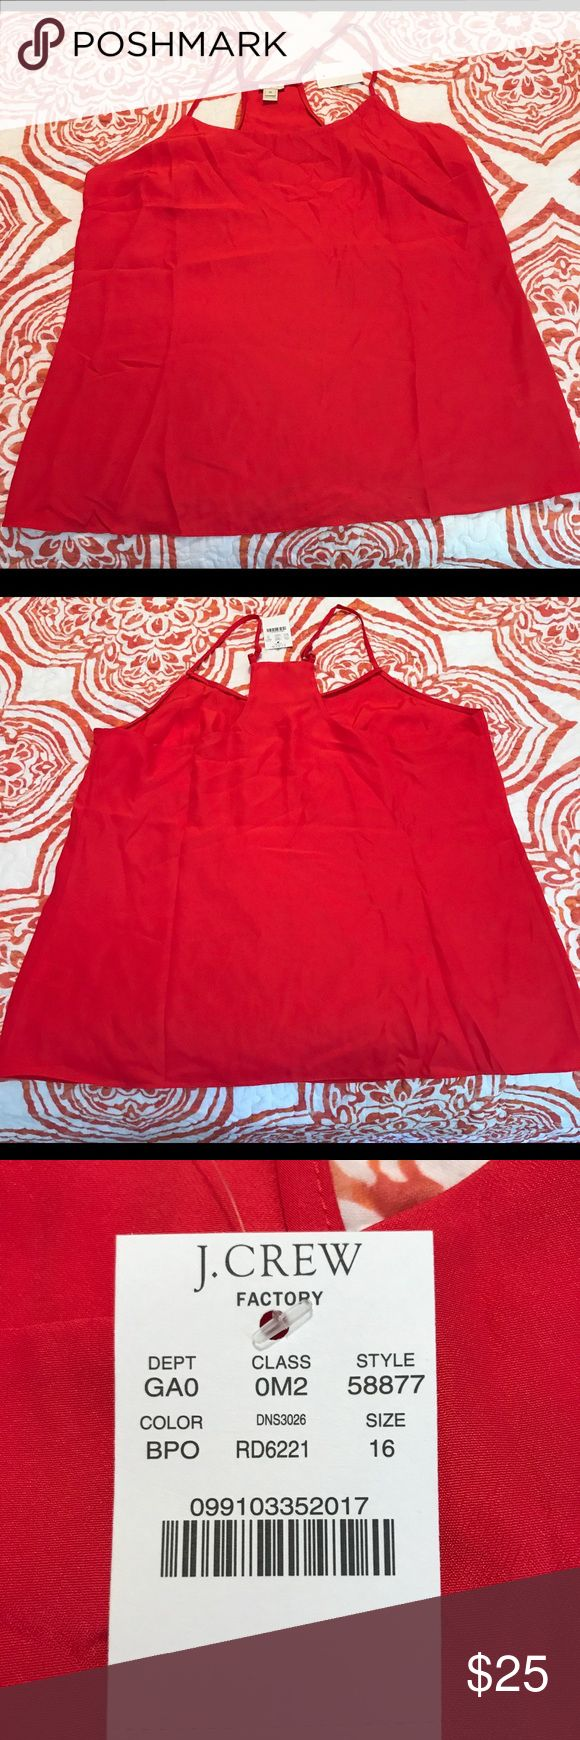 J. Crew Racerback Top - Size 16 Beautiful geranium red polyester tank with racerback. Perfect for the office under a cardigan or blazer! Brand new with tags. J. Crew Tops Tank Tops